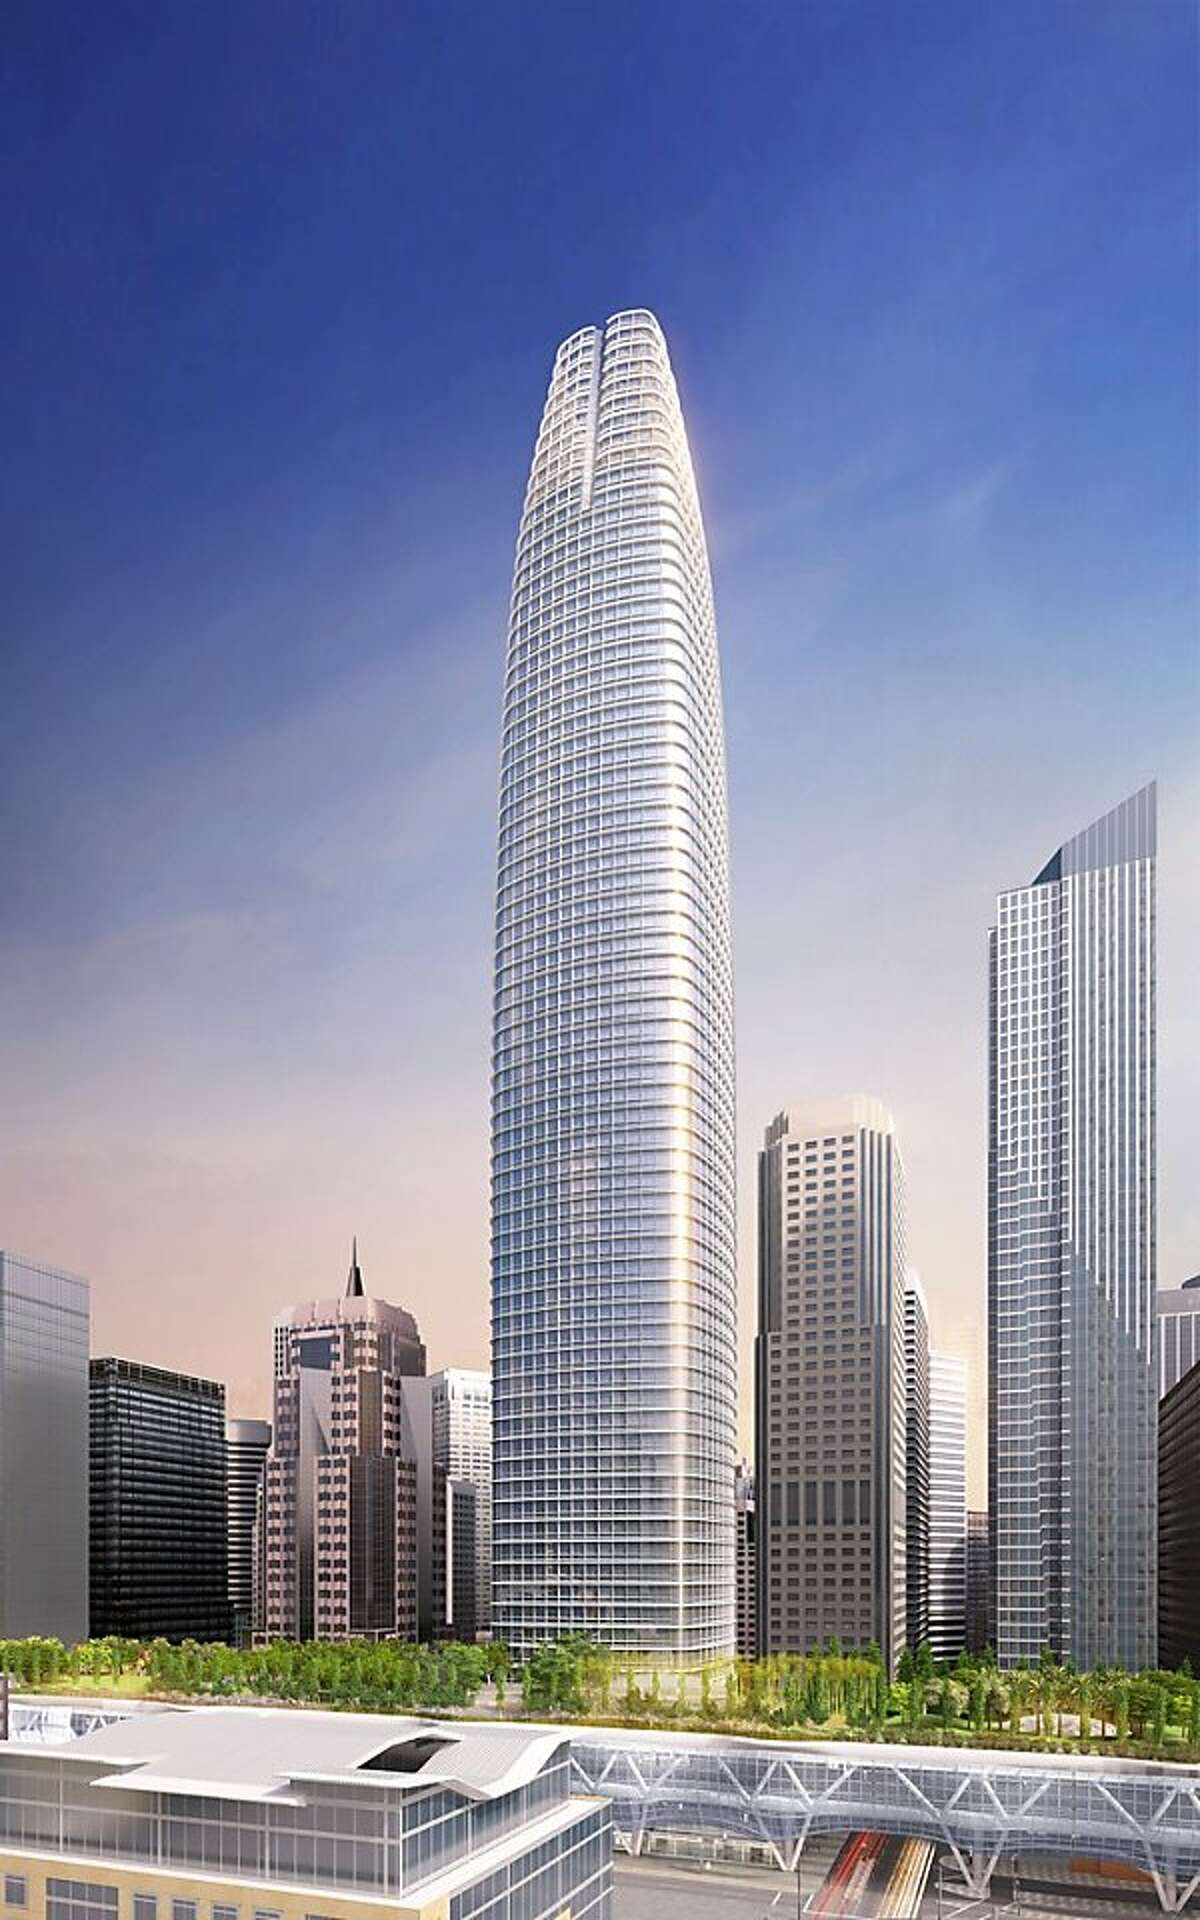 The design of the 1,070-foot tower proposed for the corner of First and Mission streets in San Francisco has been refined to give it a more distinctive appearance on the skyline, especially at night. The project, first conceived in 2007, is scheduled to go to the Planning Commission in October for final approvals.